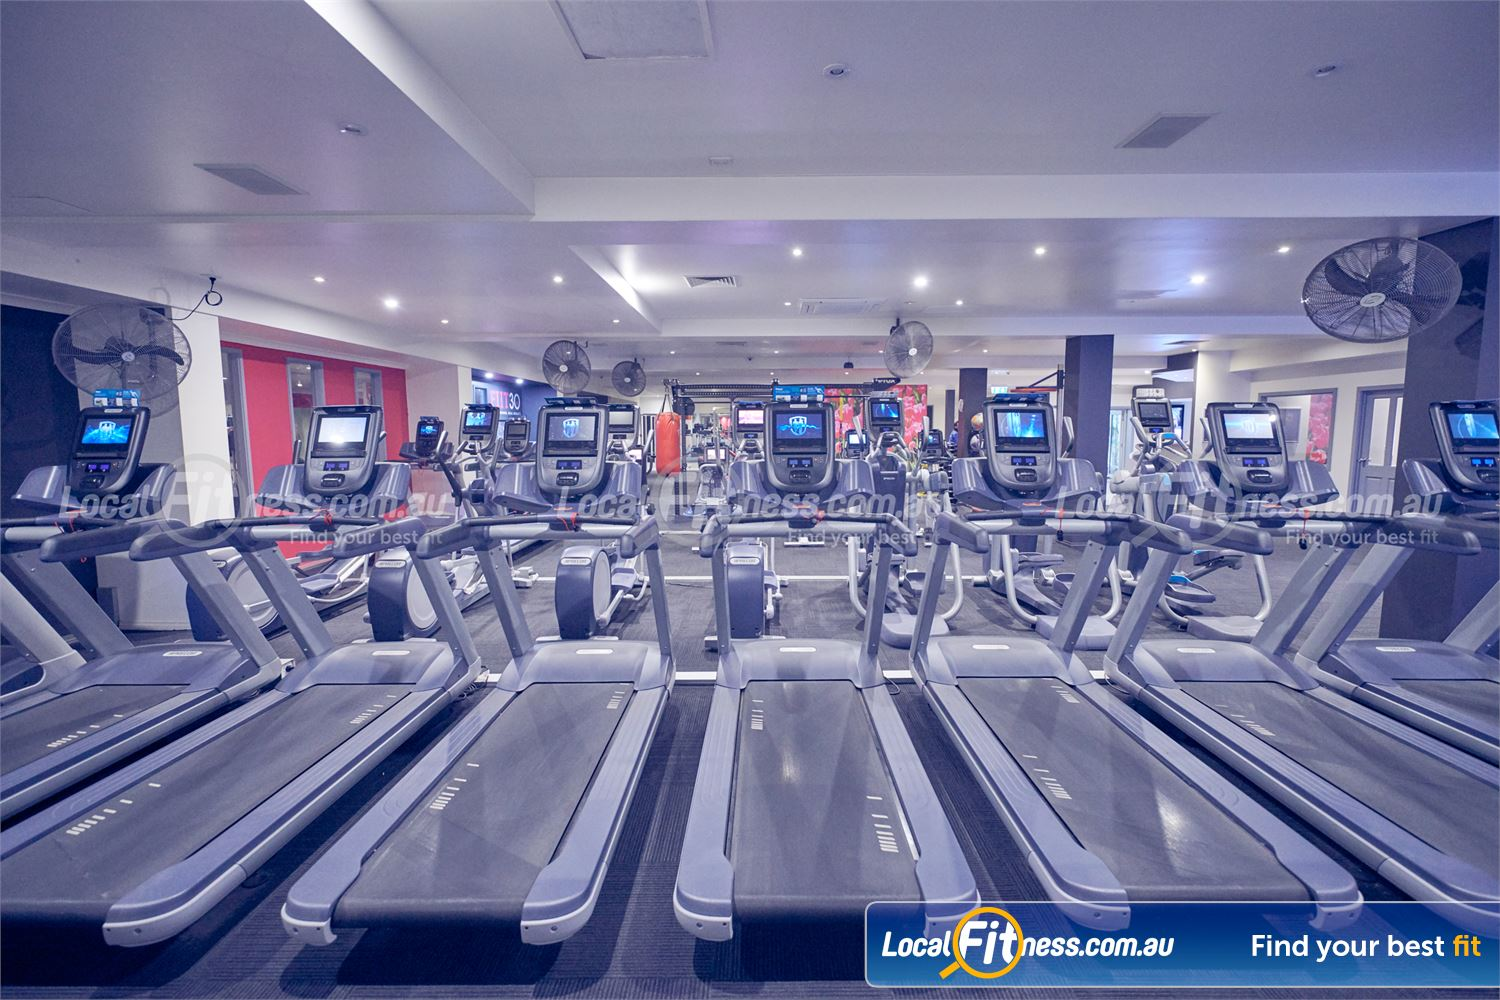 Fernwood Fitness Near Templestowe Lower Enjoy a sea of cardio inc. treadmills, cross trainers, cycle bikes and more.